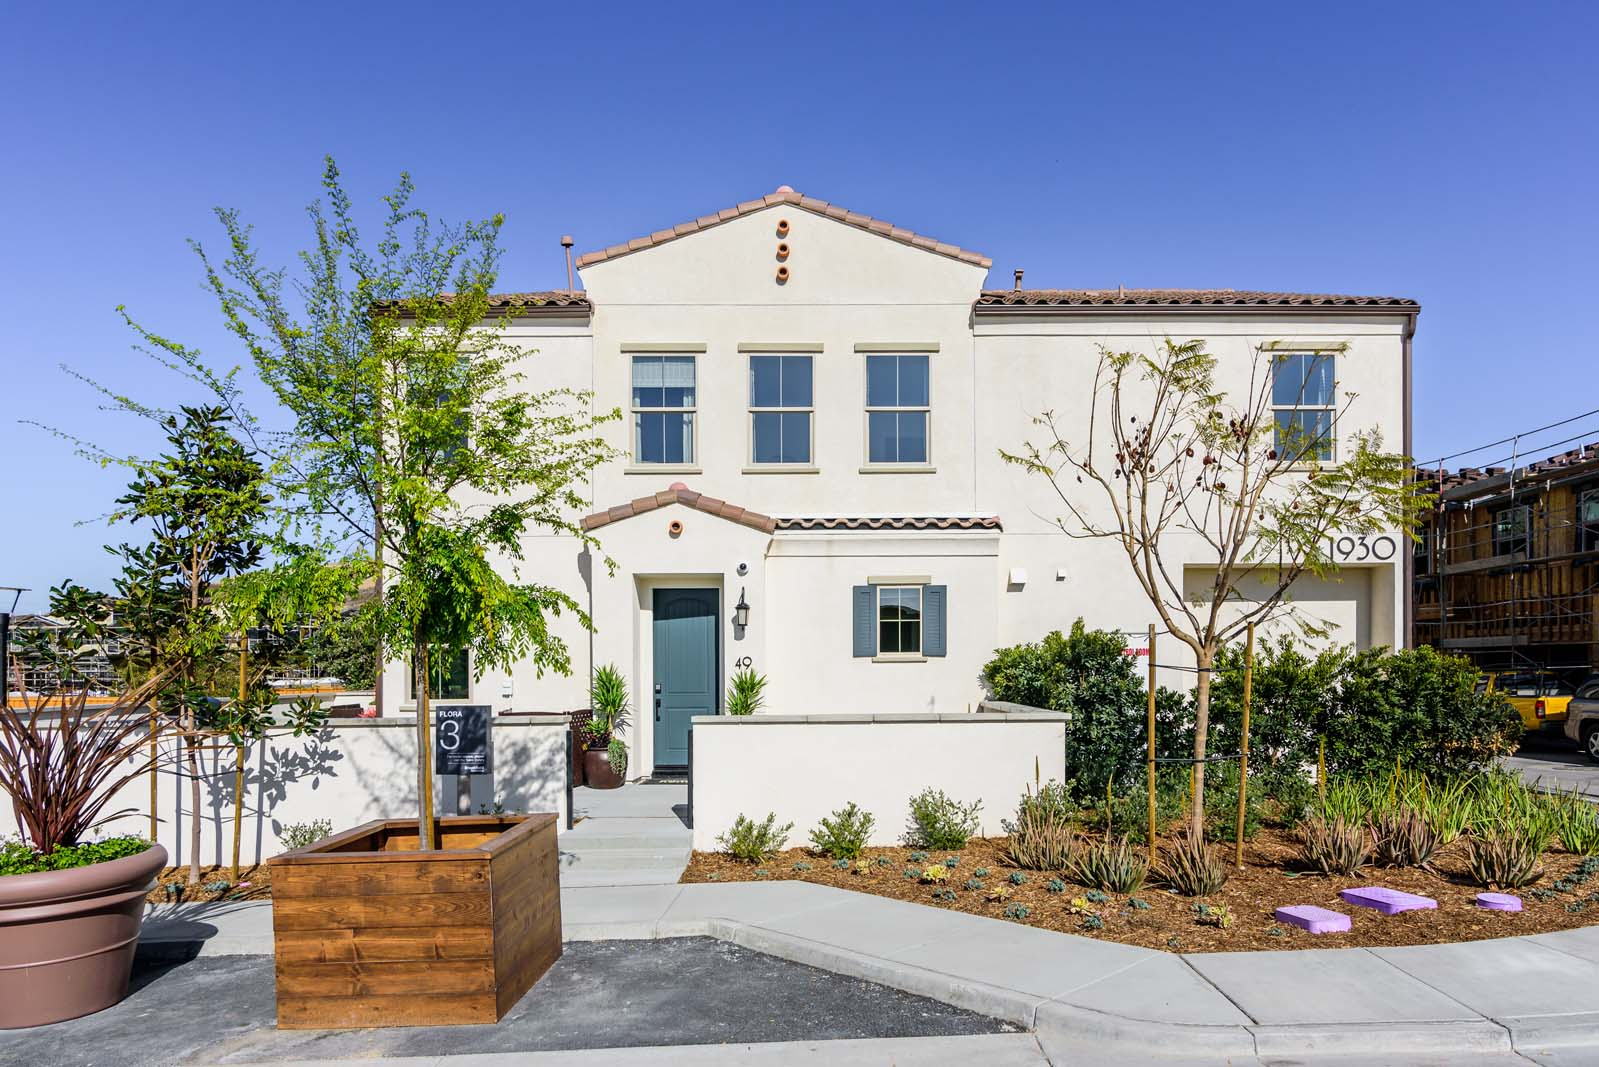 Modern San Diego New Townhomes for Sale